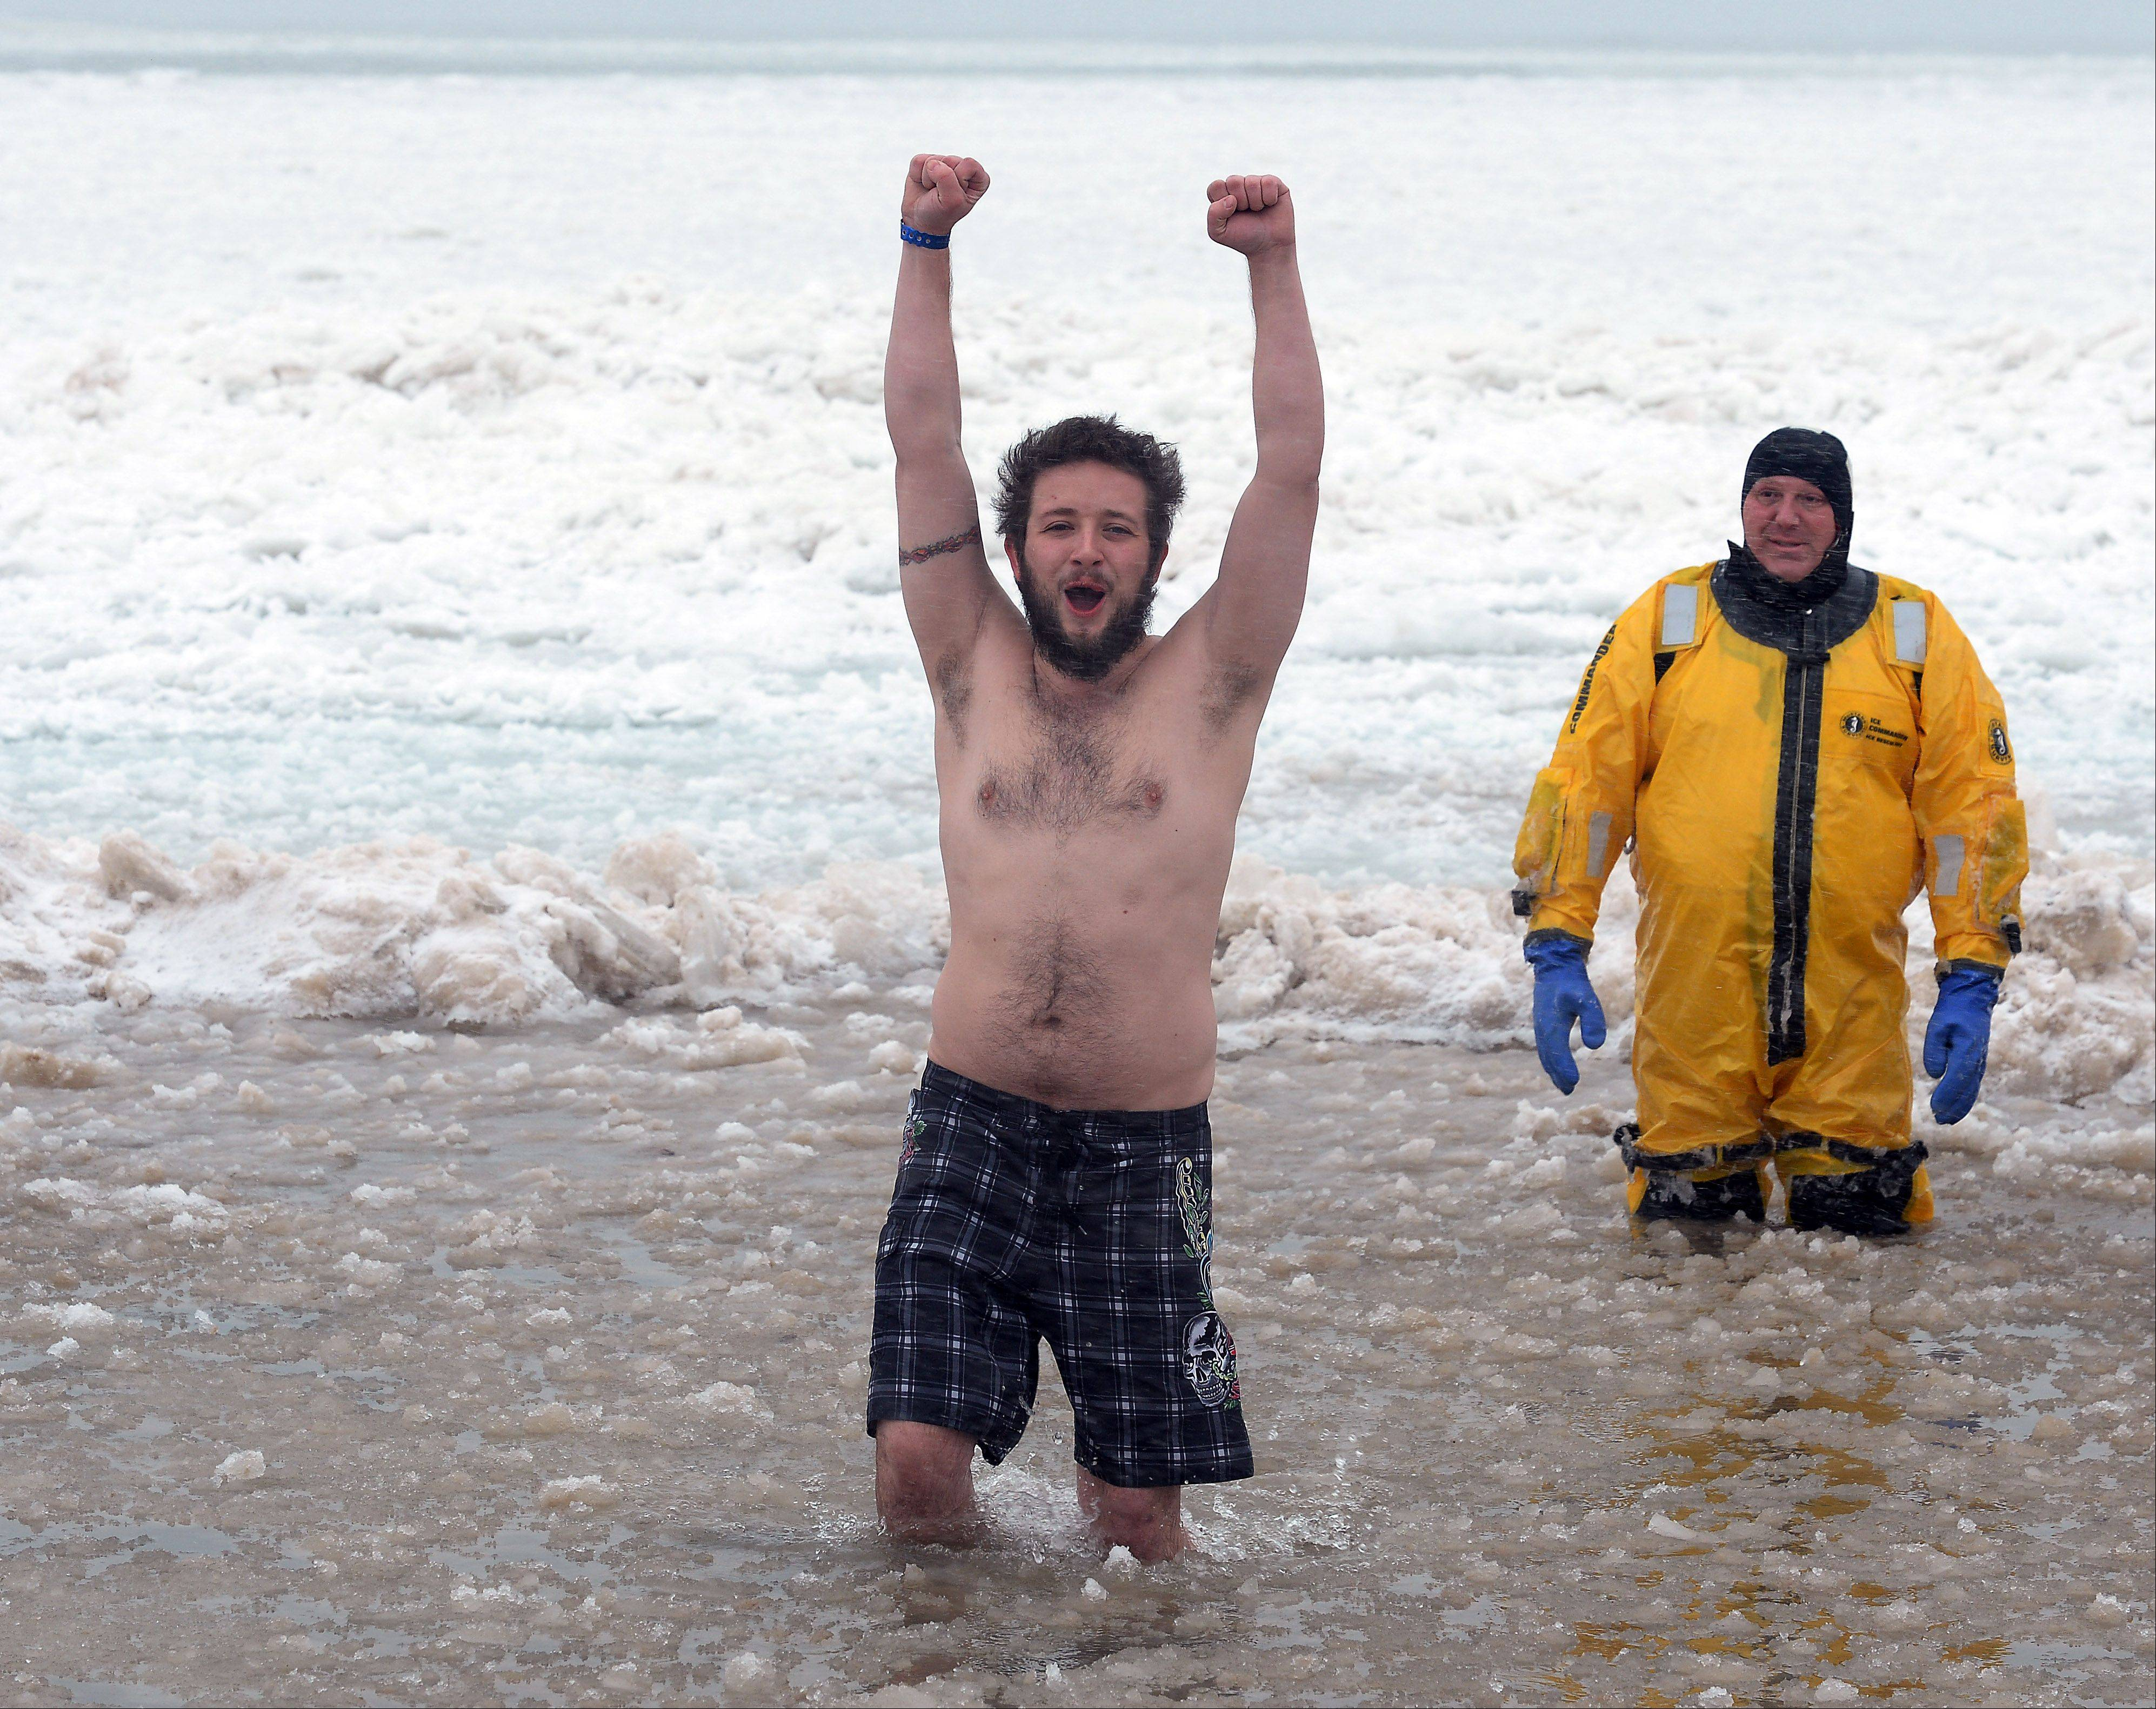 163 people brave snow, frigid water for Polar Bear Plunge in Waukegan